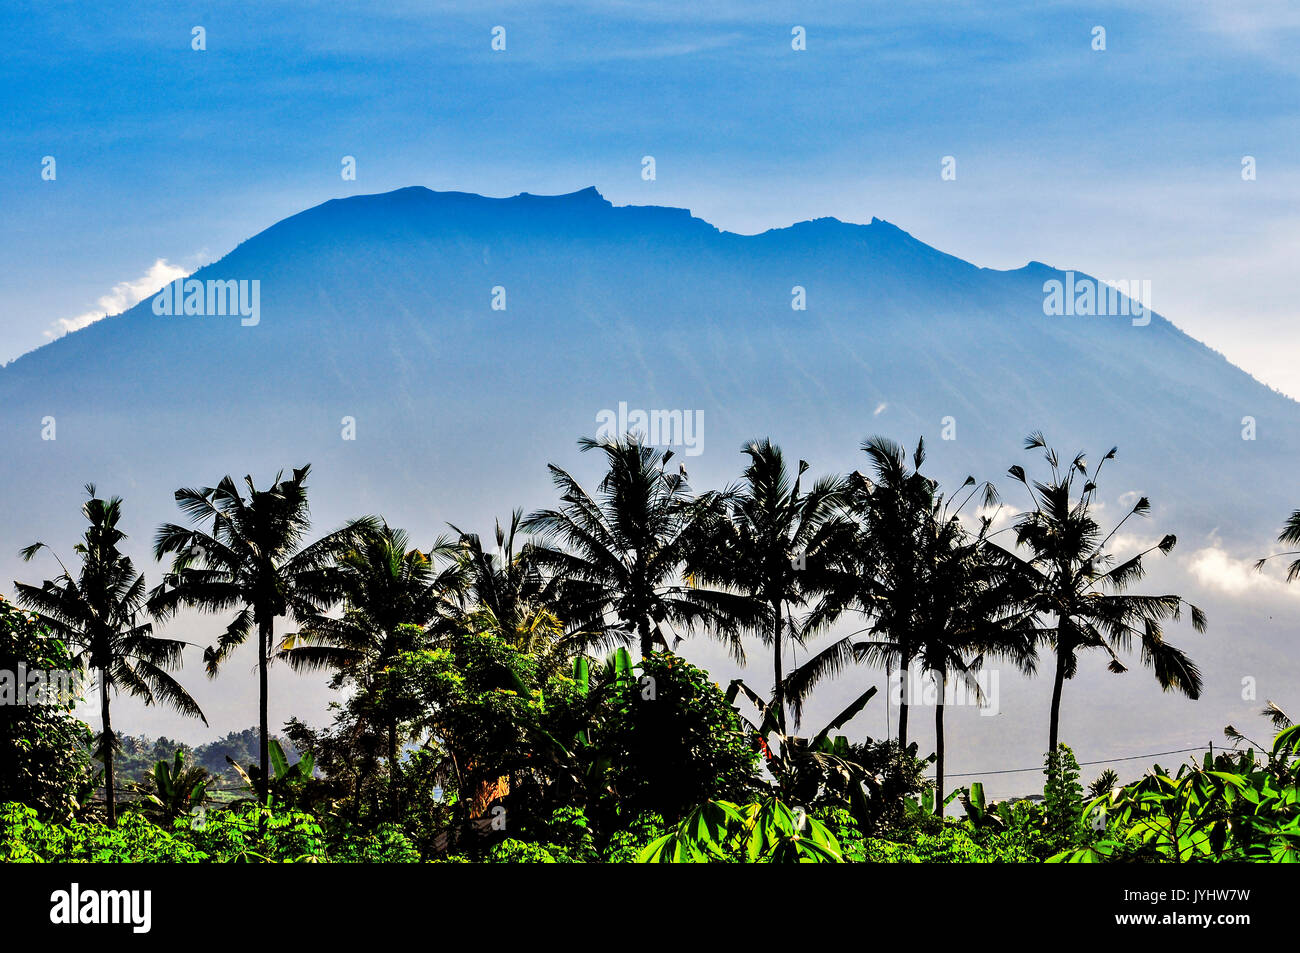 Asia, South-East Asia, Indonesia, Bali. Sidemen. The mount Agung. - Stock Image